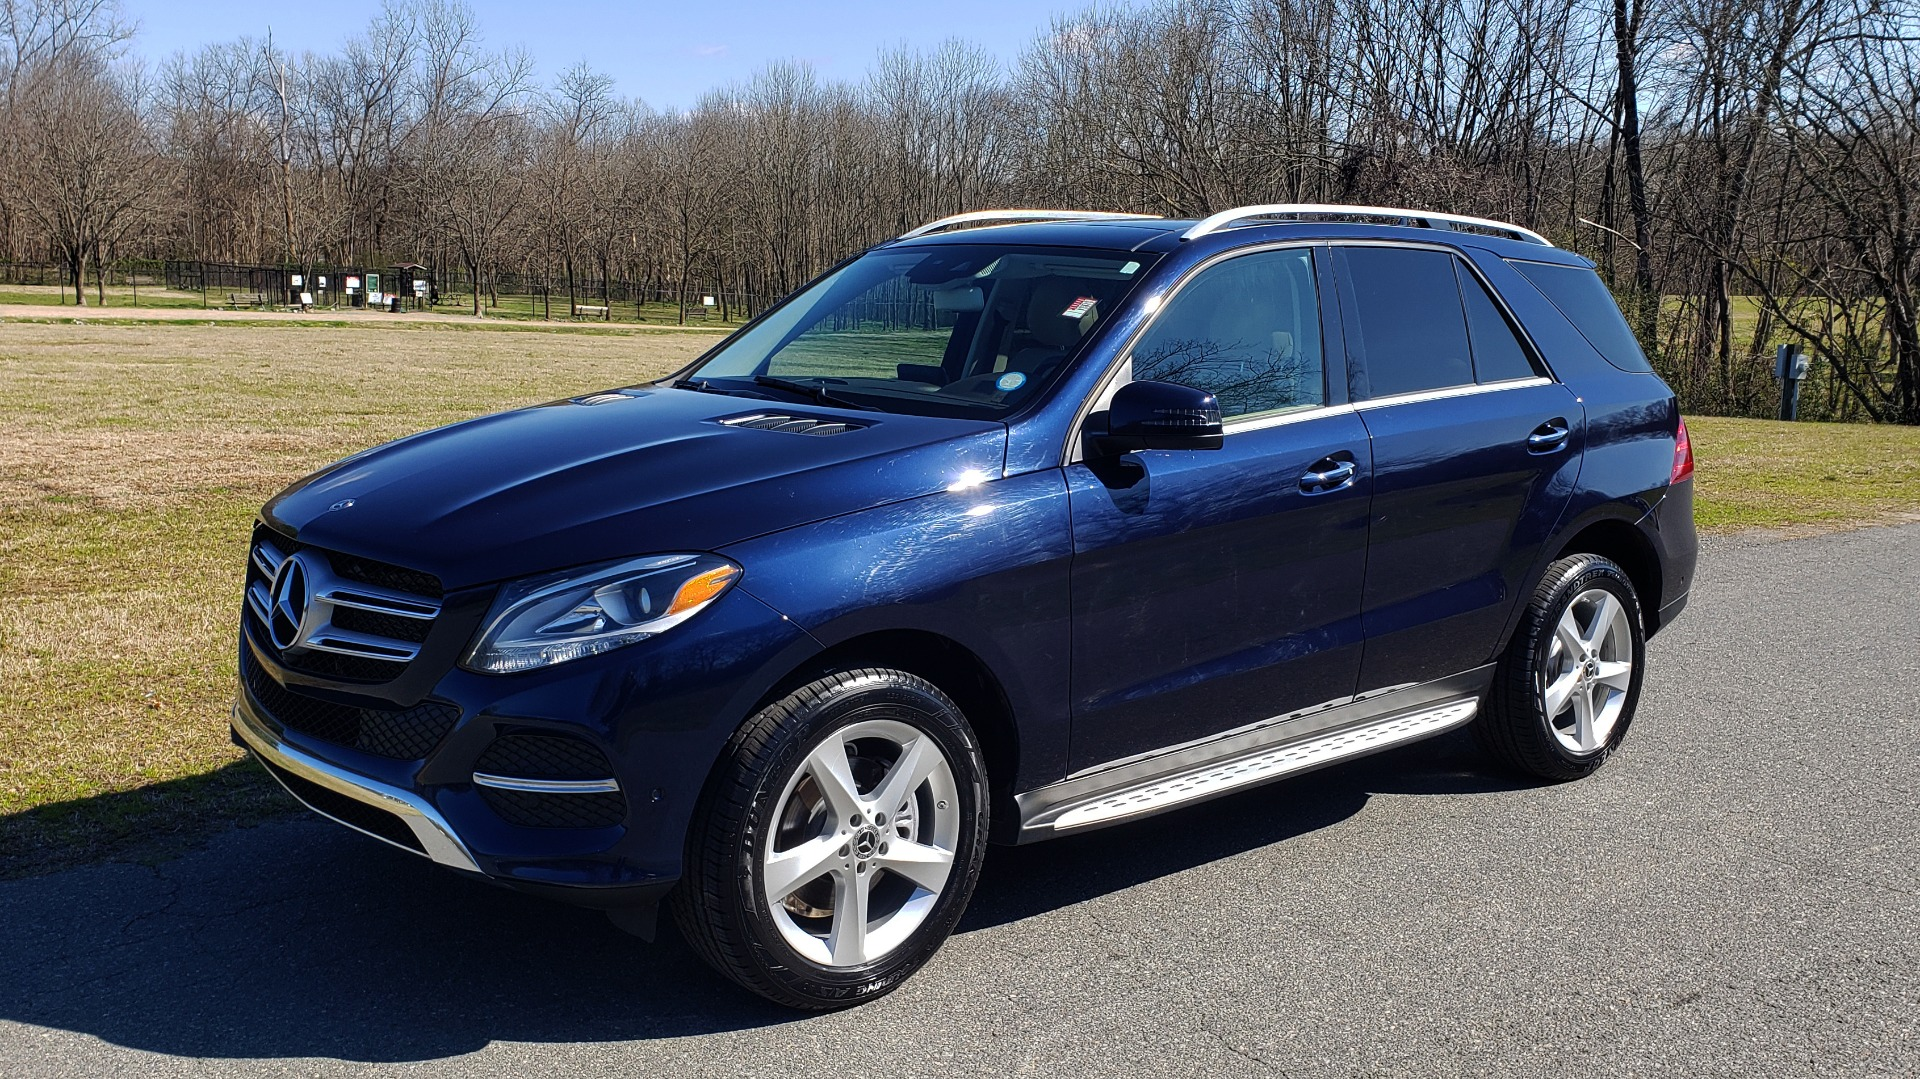 Used 2017 Mercedes-Benz GLE 350 PREMIUM / NAV / SUNROOF / PARK ASST / HTD STS for sale Sold at Formula Imports in Charlotte NC 28227 1